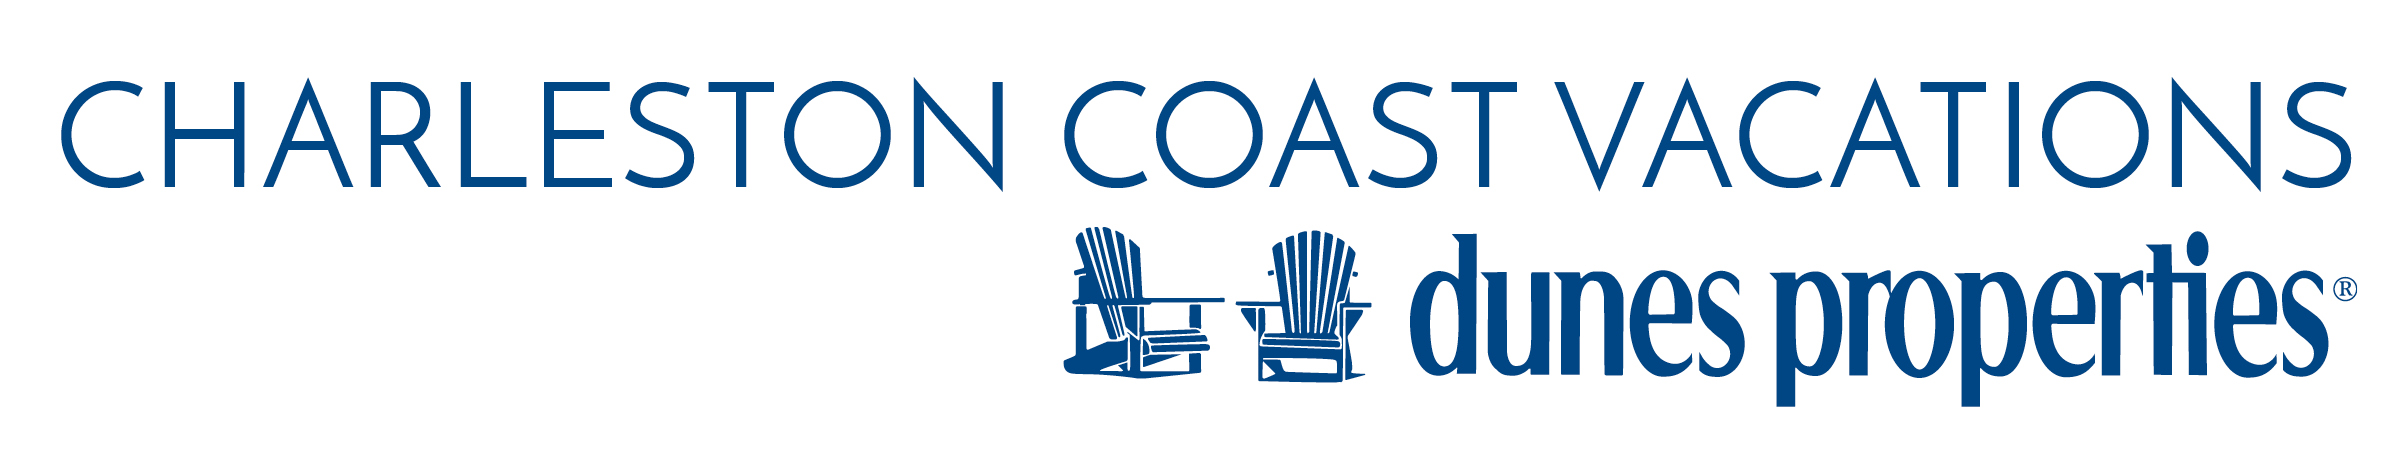 Charleston Coast Vacations, Frequently Asked Questions